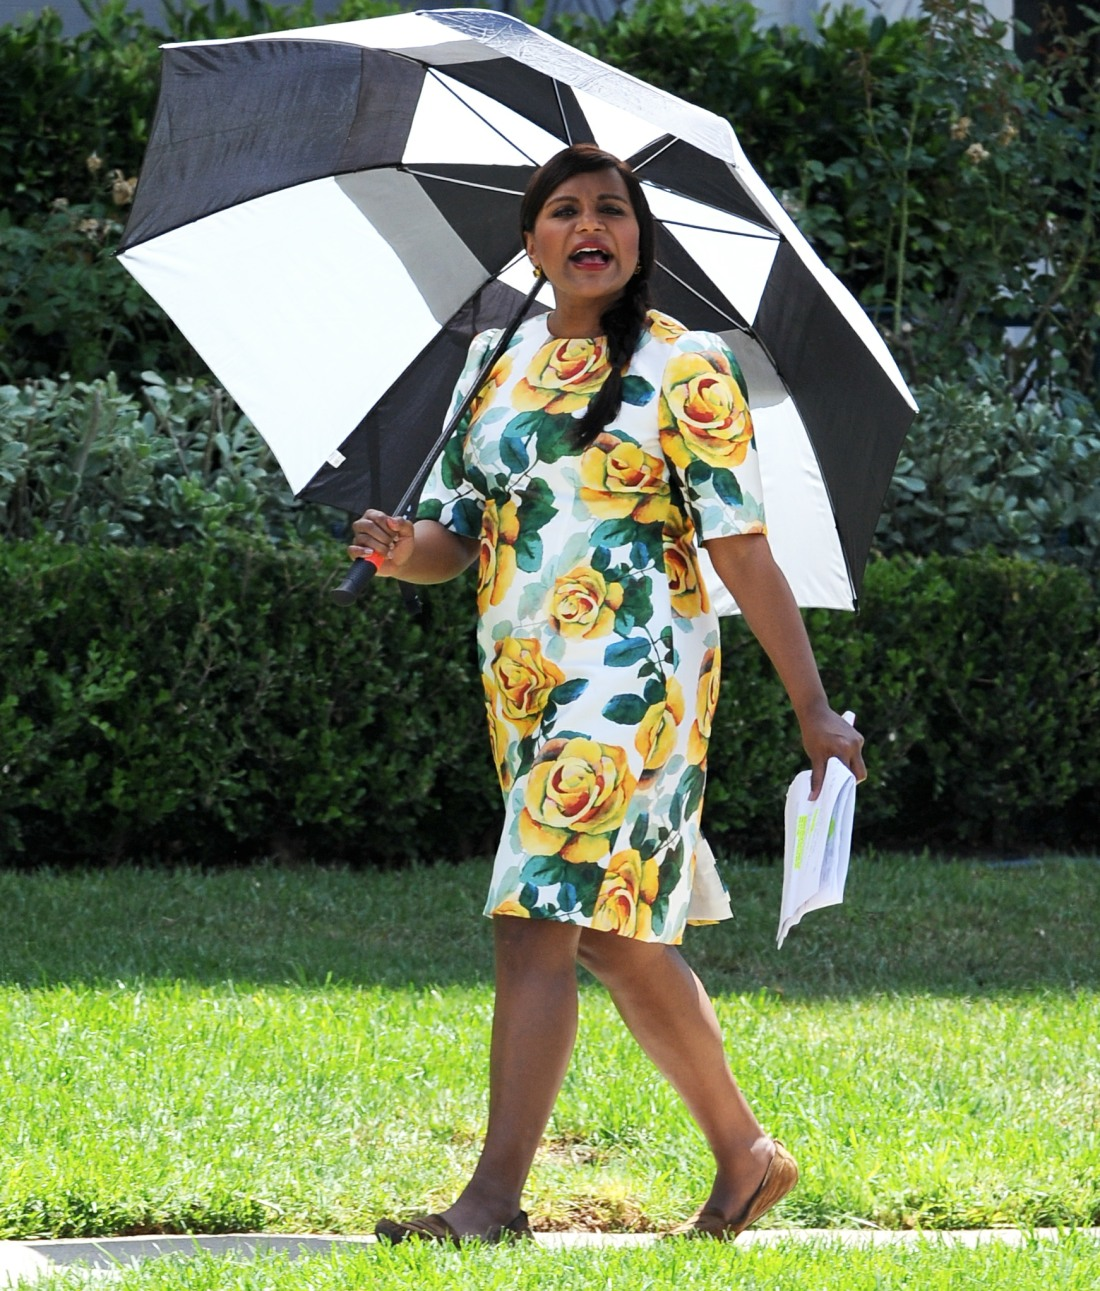 Mindy Kaling conceals her baby bump under a colorful dress